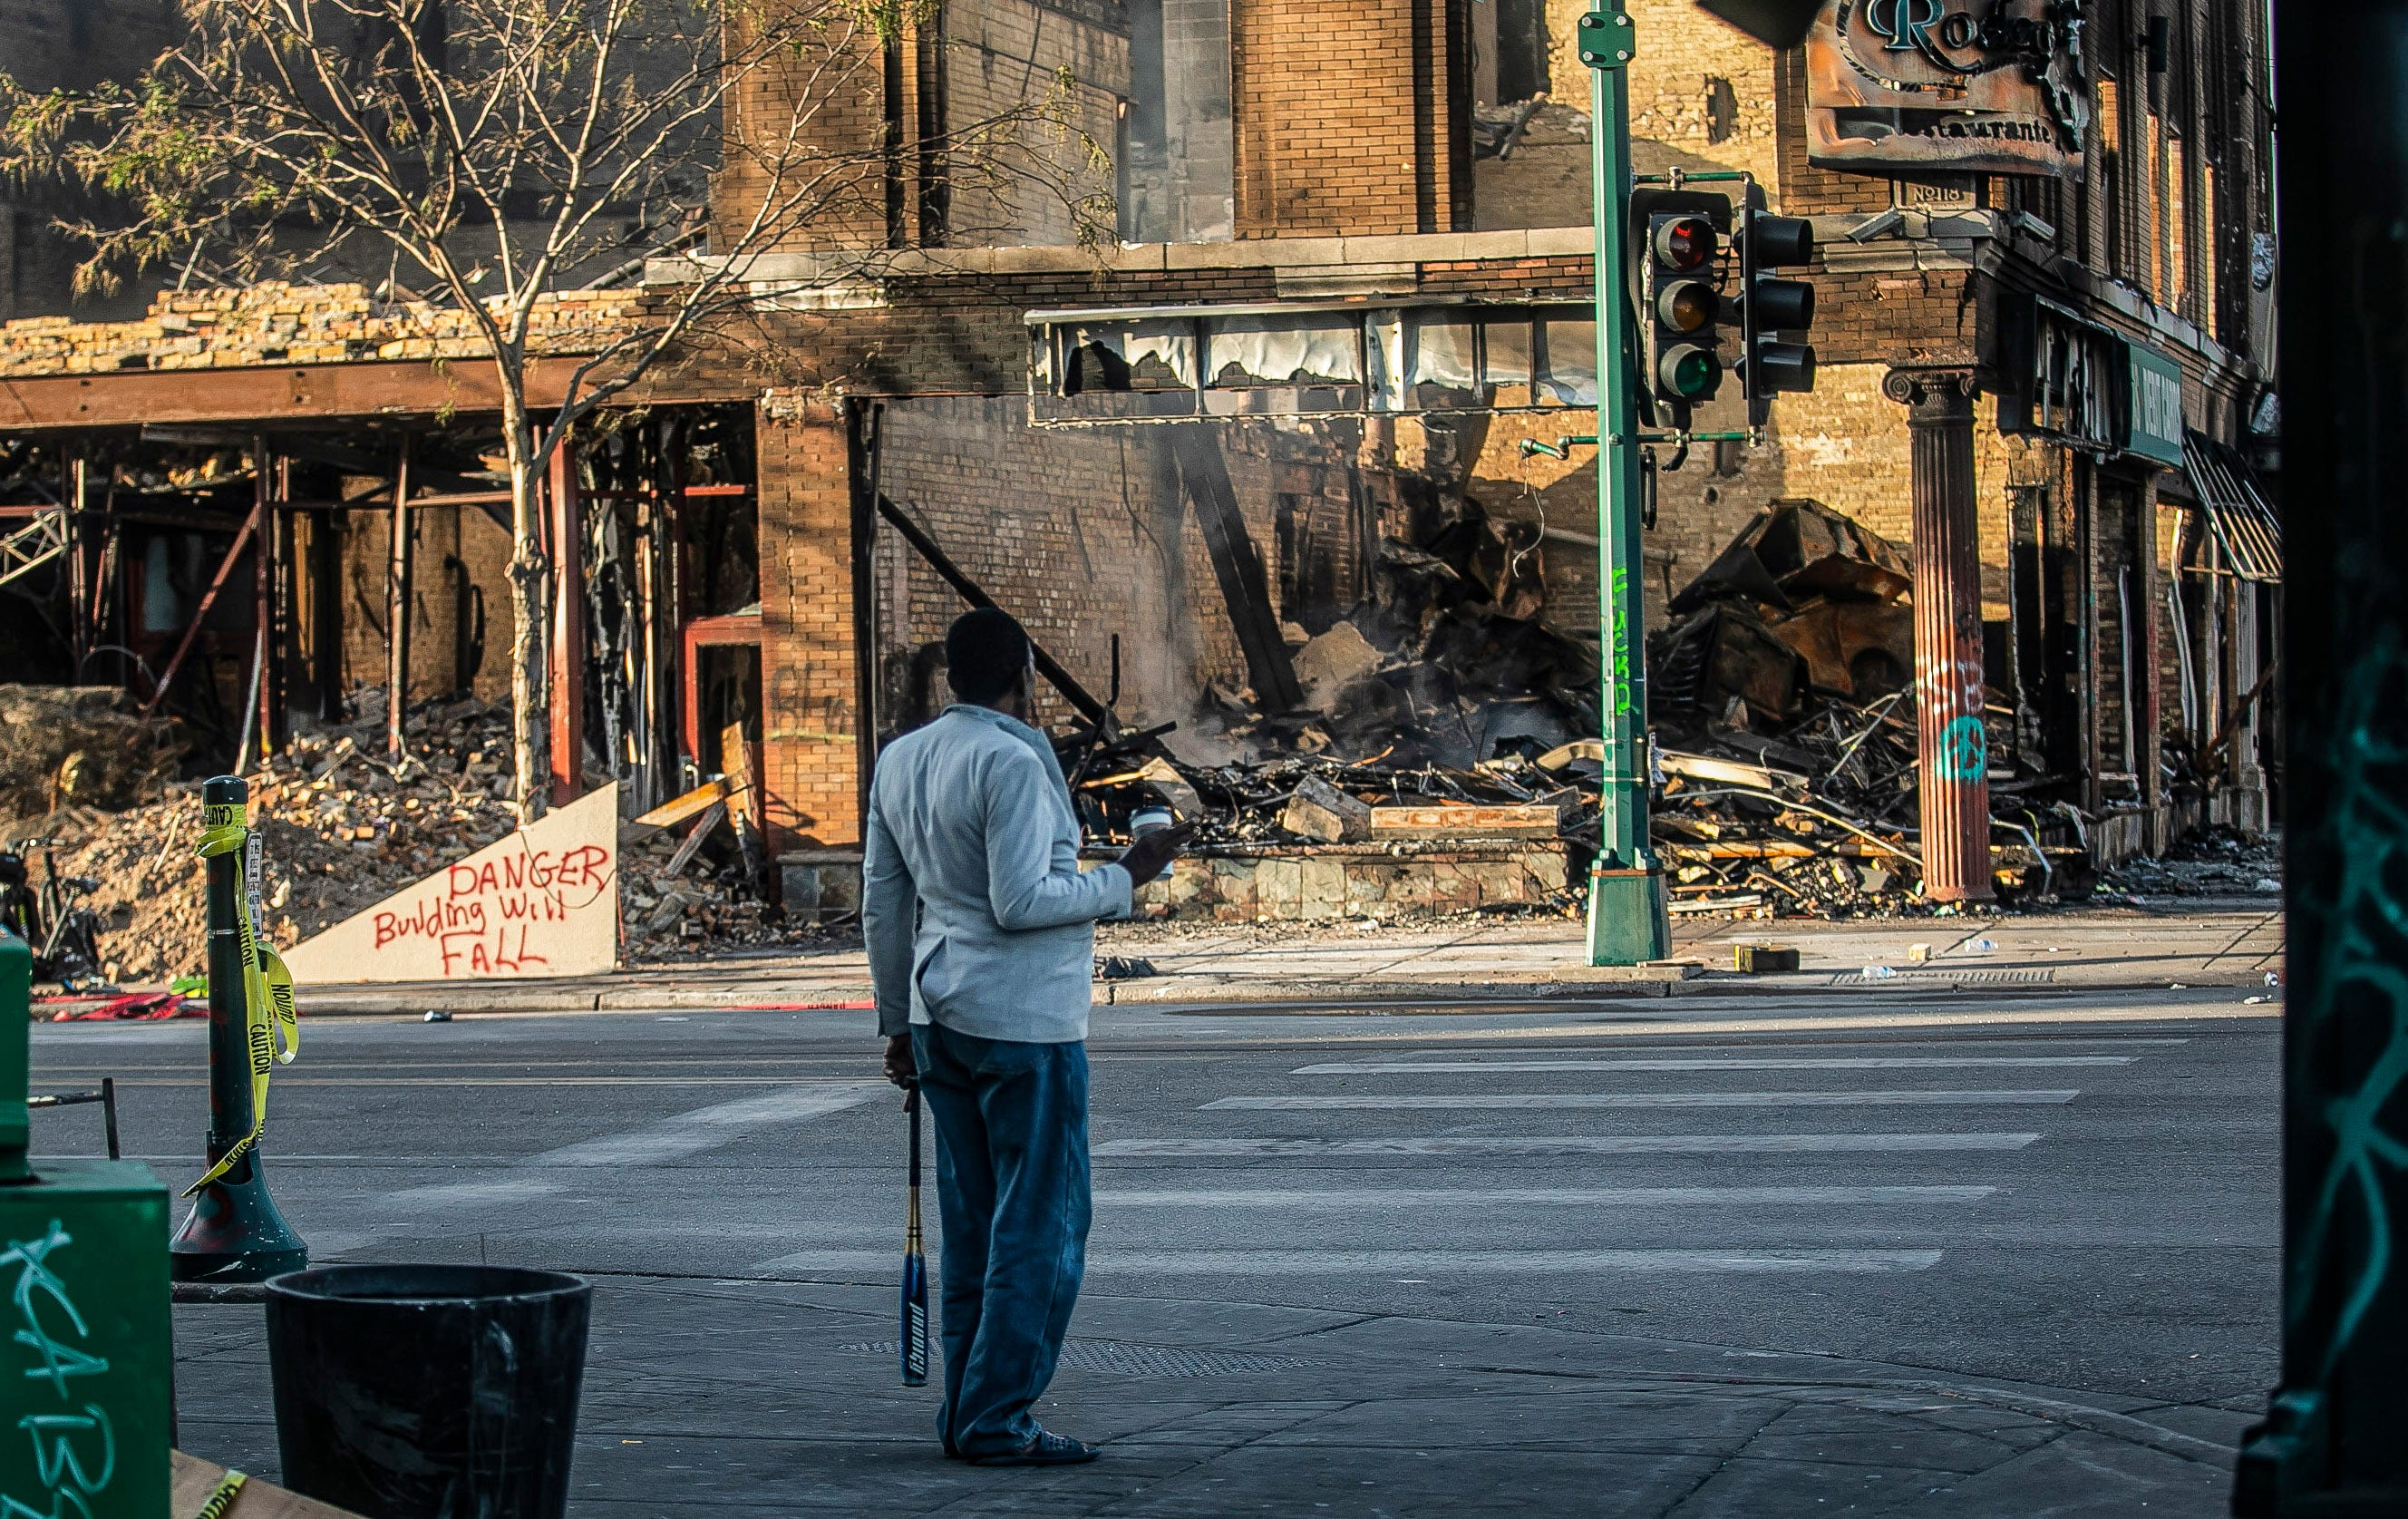 Their stores were burned, ransacked and looted. What s next for Minneapolis-area small business owners who lost everything?